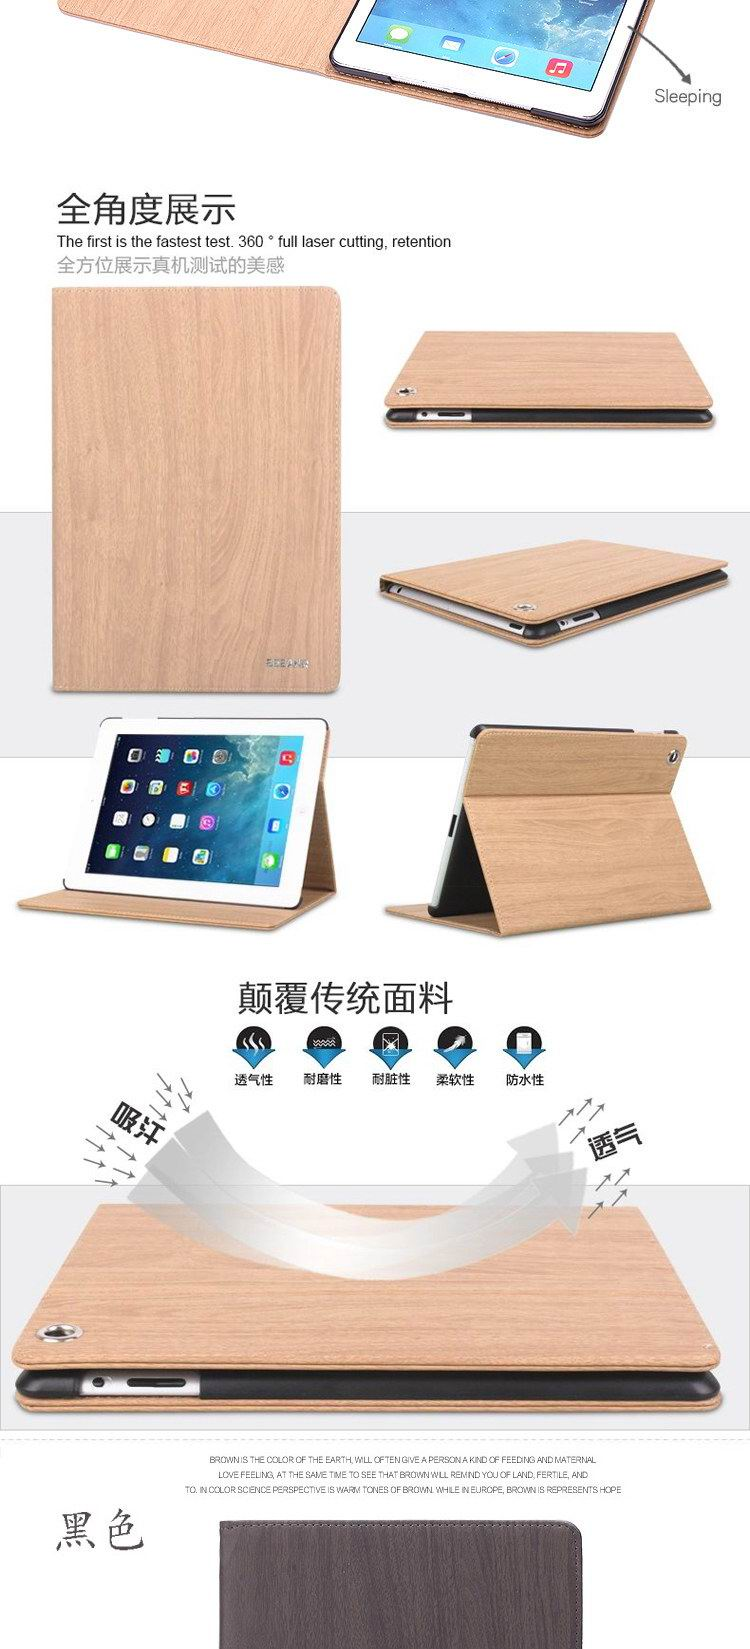 BEEANR iPad cover with wood multicolor pattern for Apple iPad 2, iPad 3, iPad 4, iPad Air 1, iPad Air 2